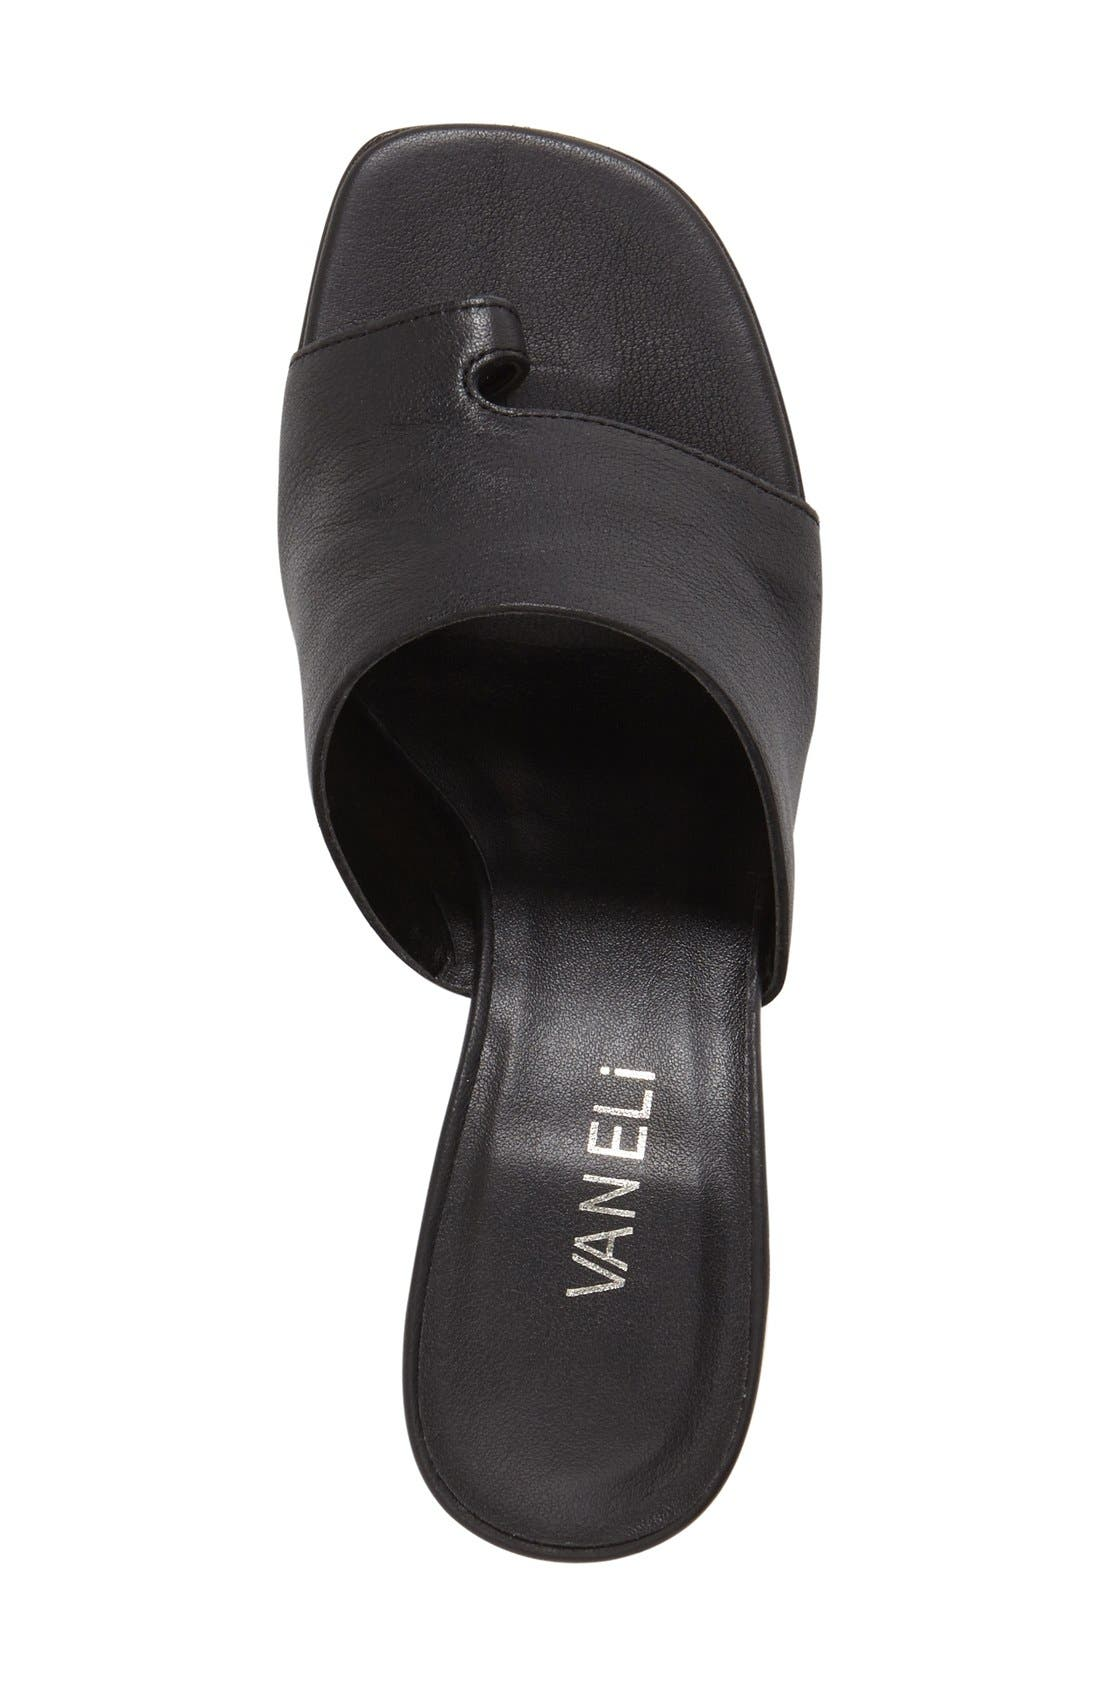 'Melea' Slide Sandal,                             Alternate thumbnail 3, color,                             Black Sweta Calf